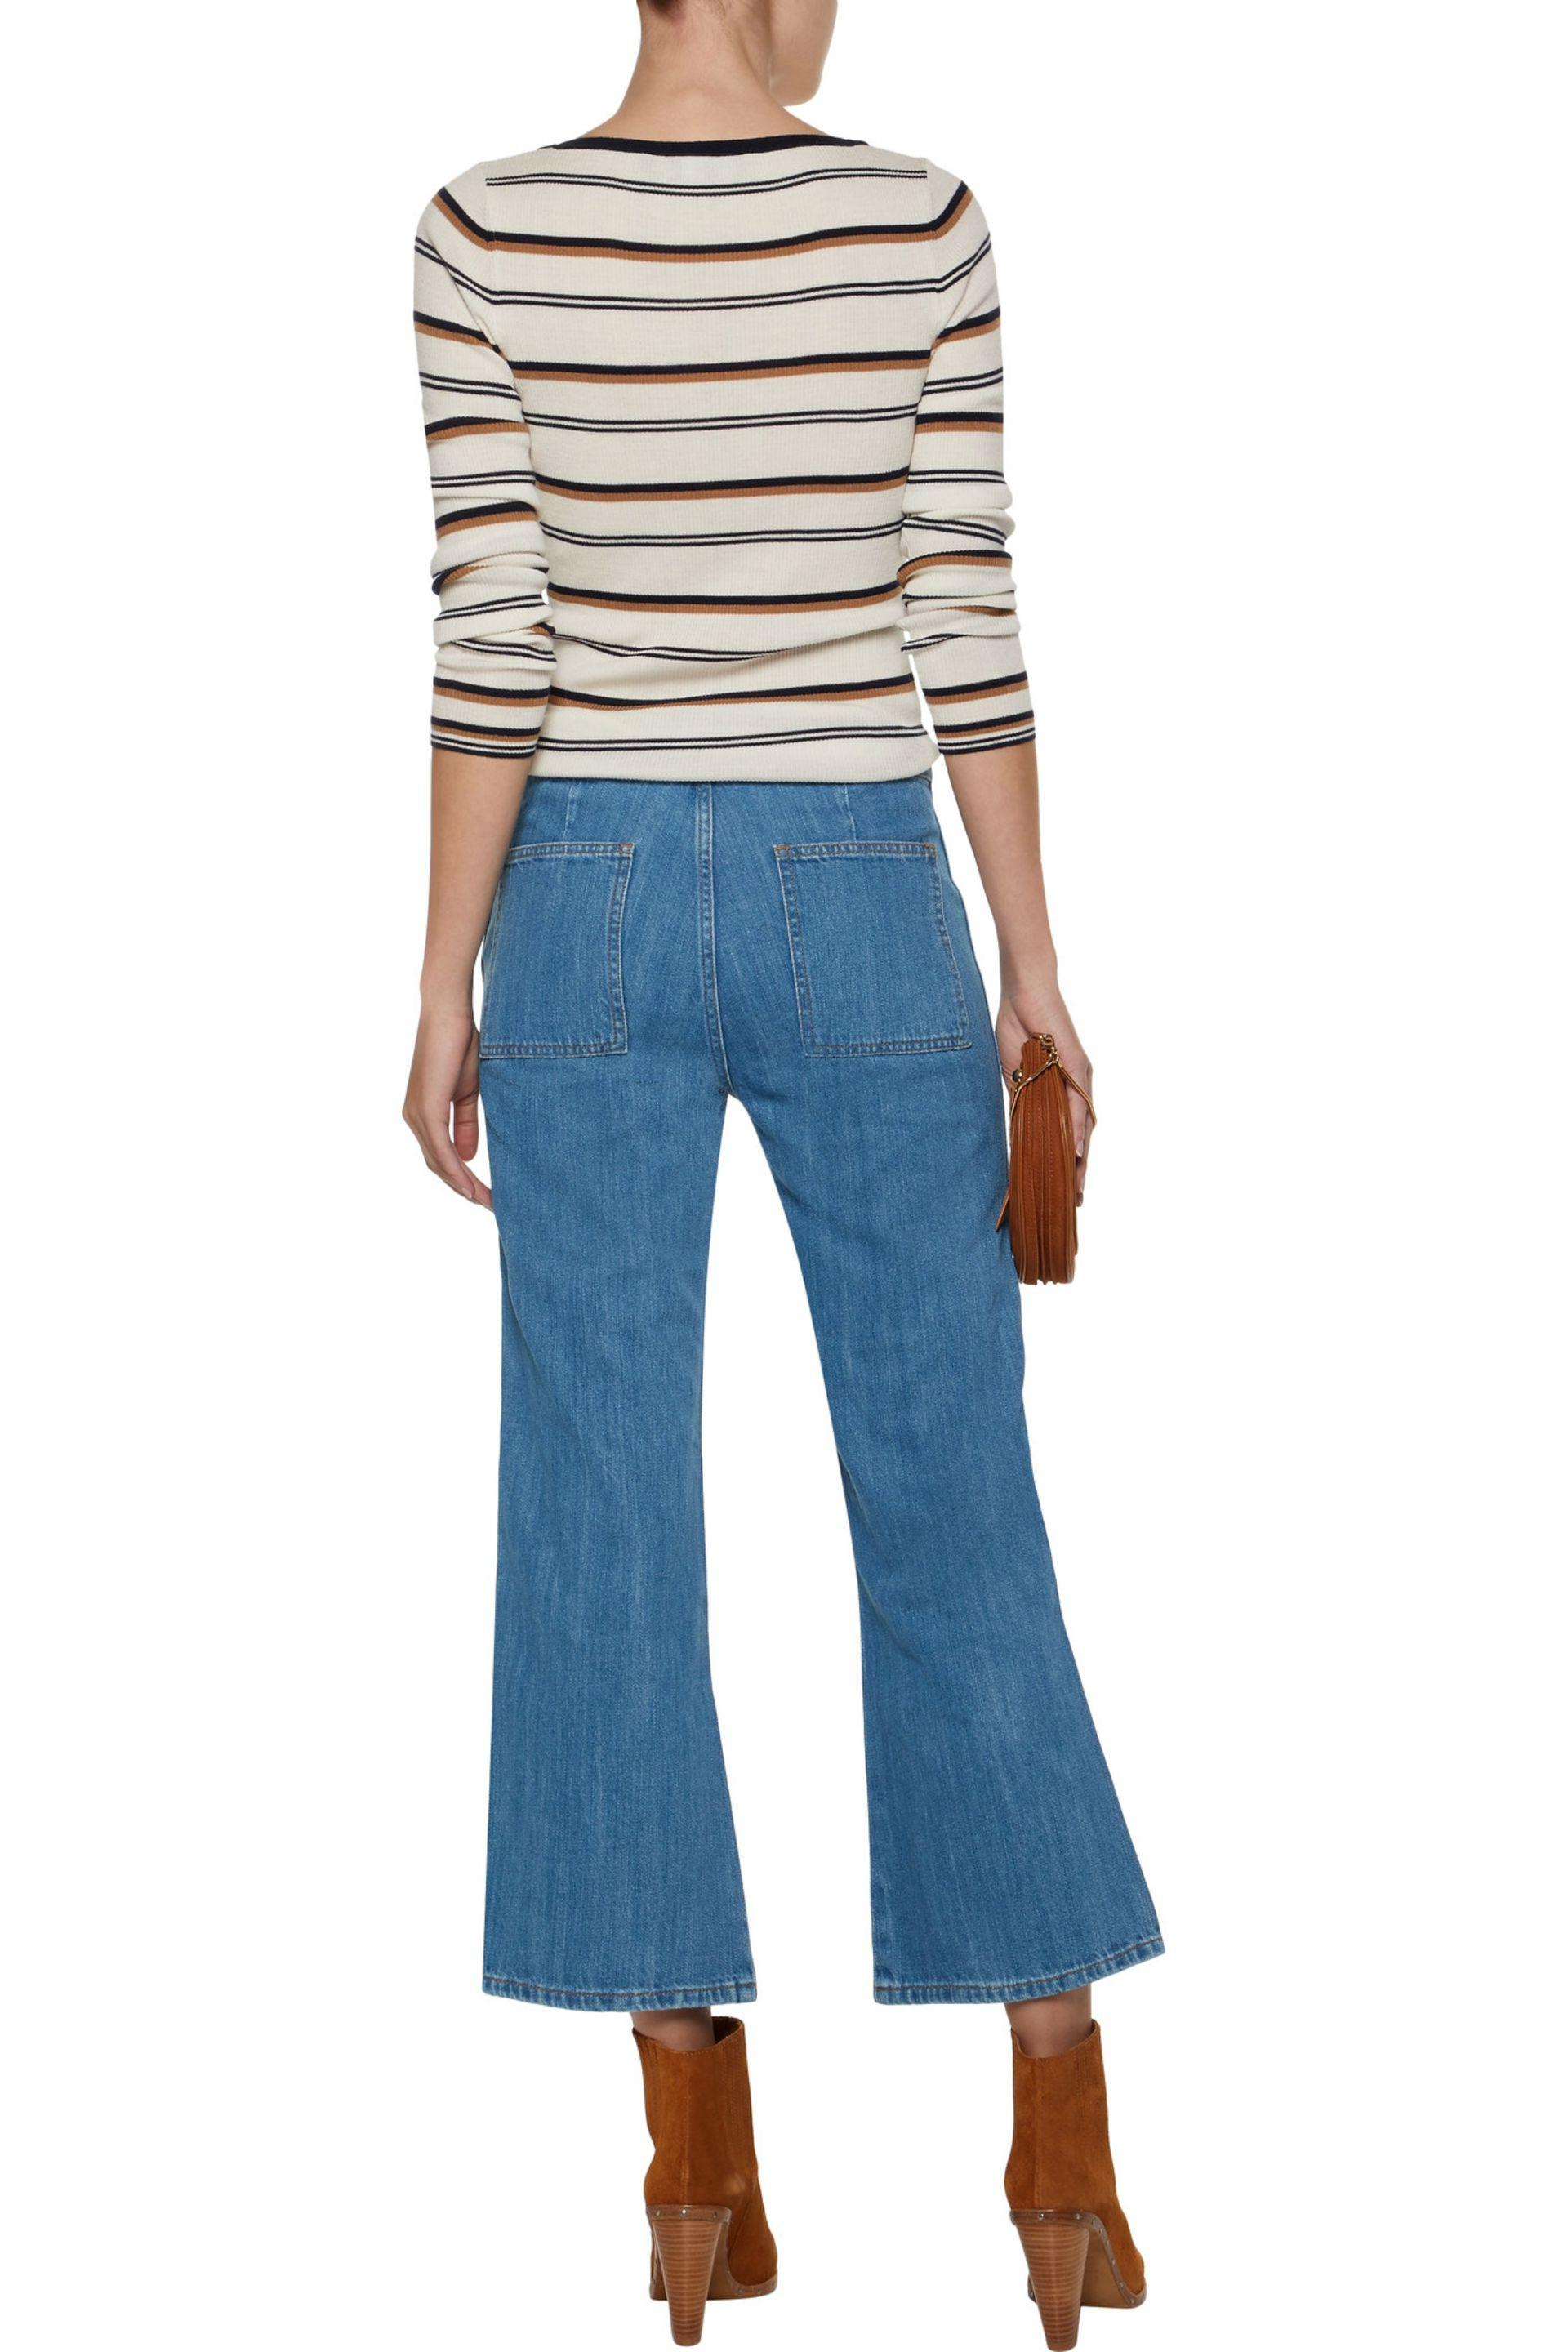 M.i.h Jeans Denim Arrow Zip-detailed High-rise Kick-flare Jeans in Mid Denim (Blue)